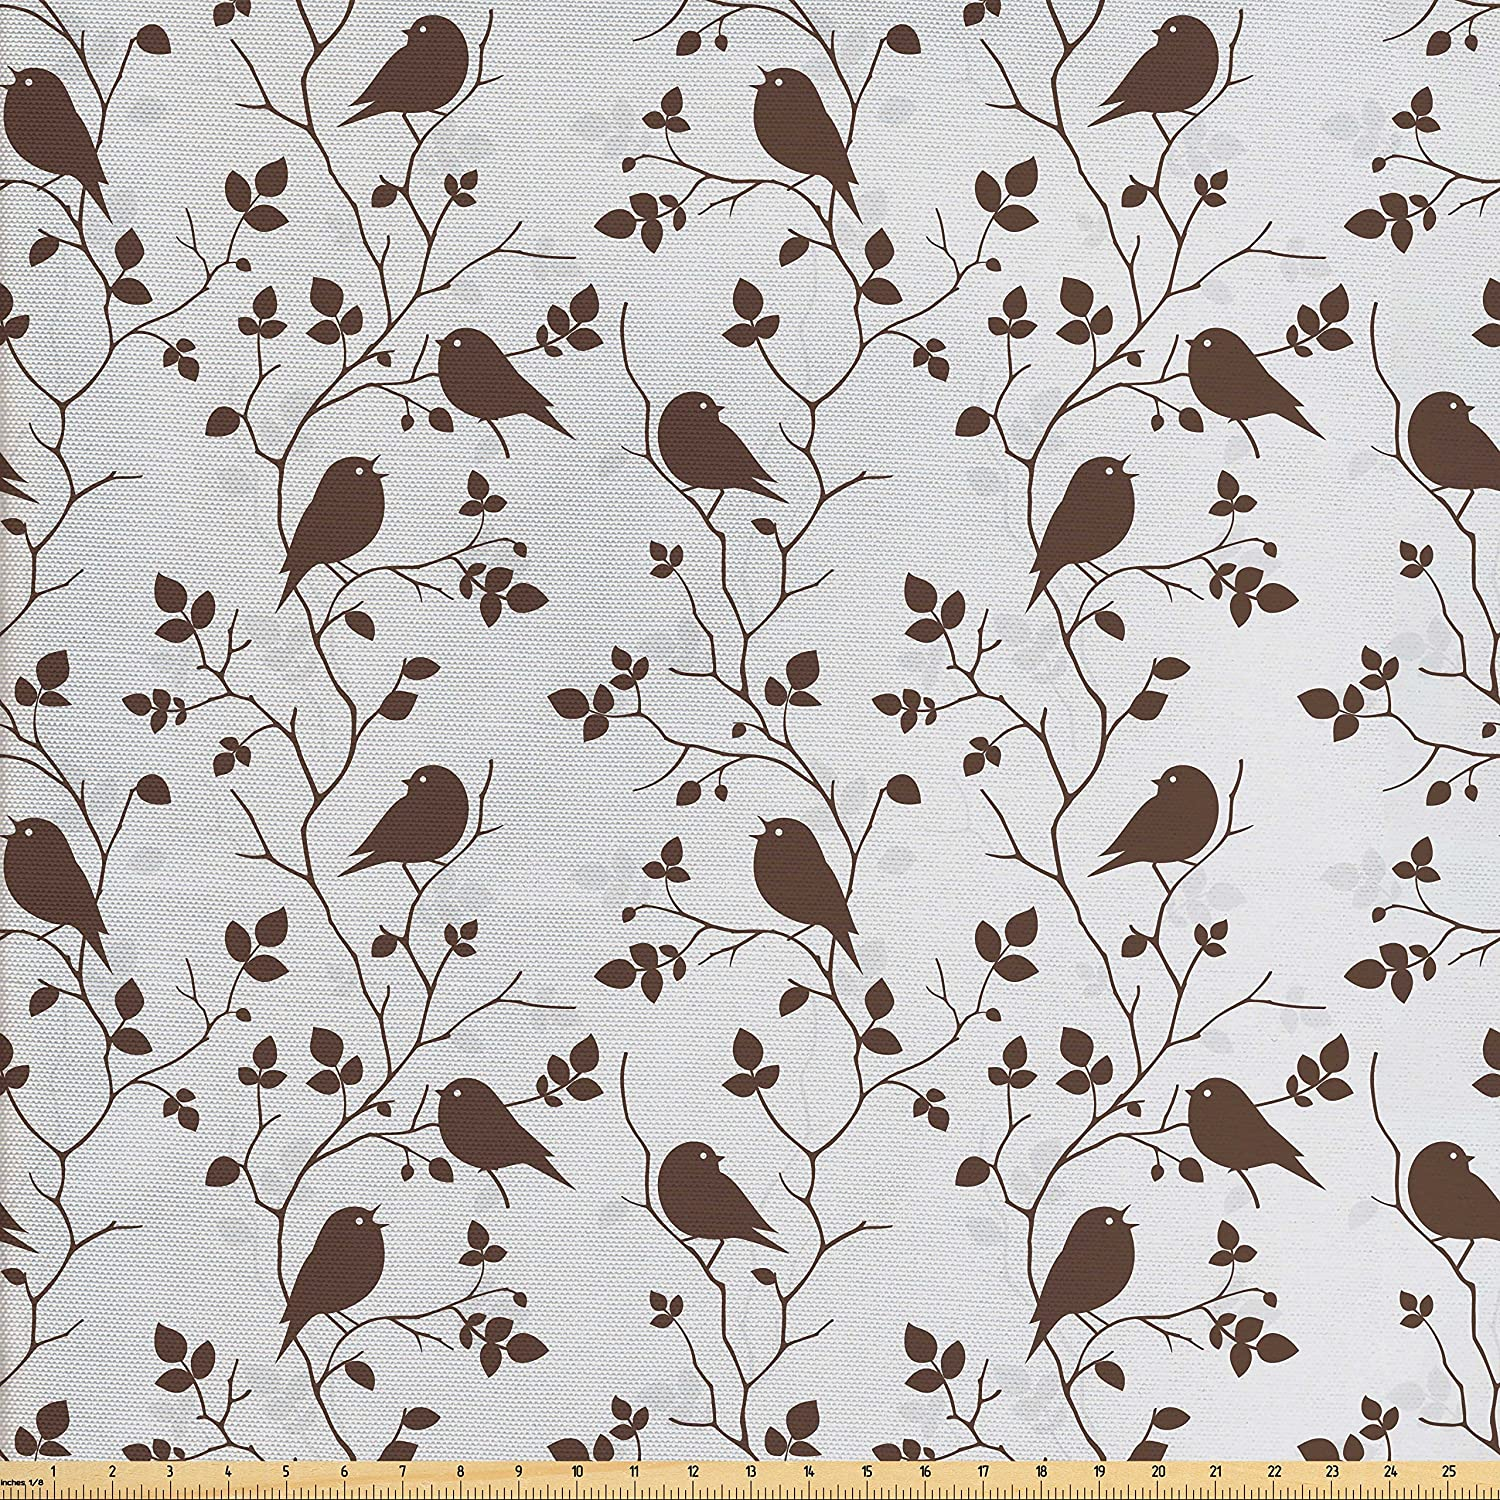 Ambesonne Leaves Fabric by The Yard, Cute Hummingbirds Sitting on Leafy Branches Retro Rustic Autumn Composition, Decorative Fabric for Upholstery and Home Accents, Brown Pale Grey